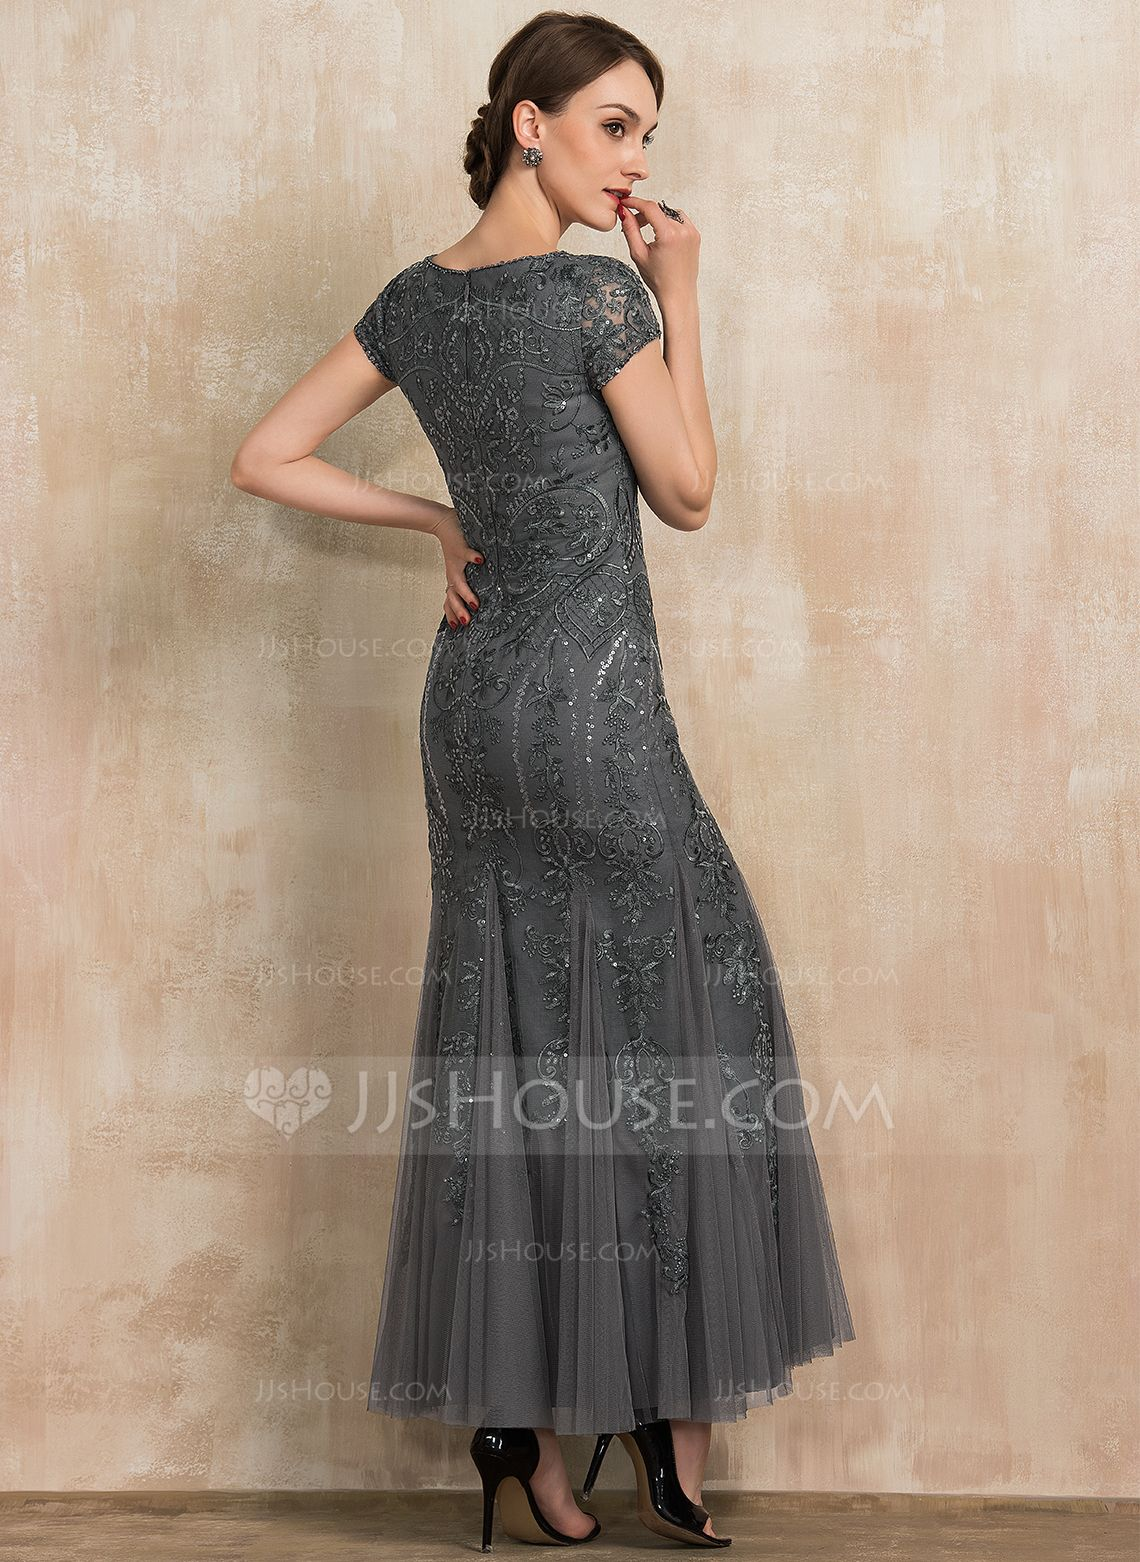 Us 160 00 Trumpet Mermaid Scoop Neck Ankle Length Tulle Lace Sequined Mother Of The Bride Dress With Beading Sequins Jj S House In 2020 Mother Of The Bride Dresses Tea Length Wedding Dress